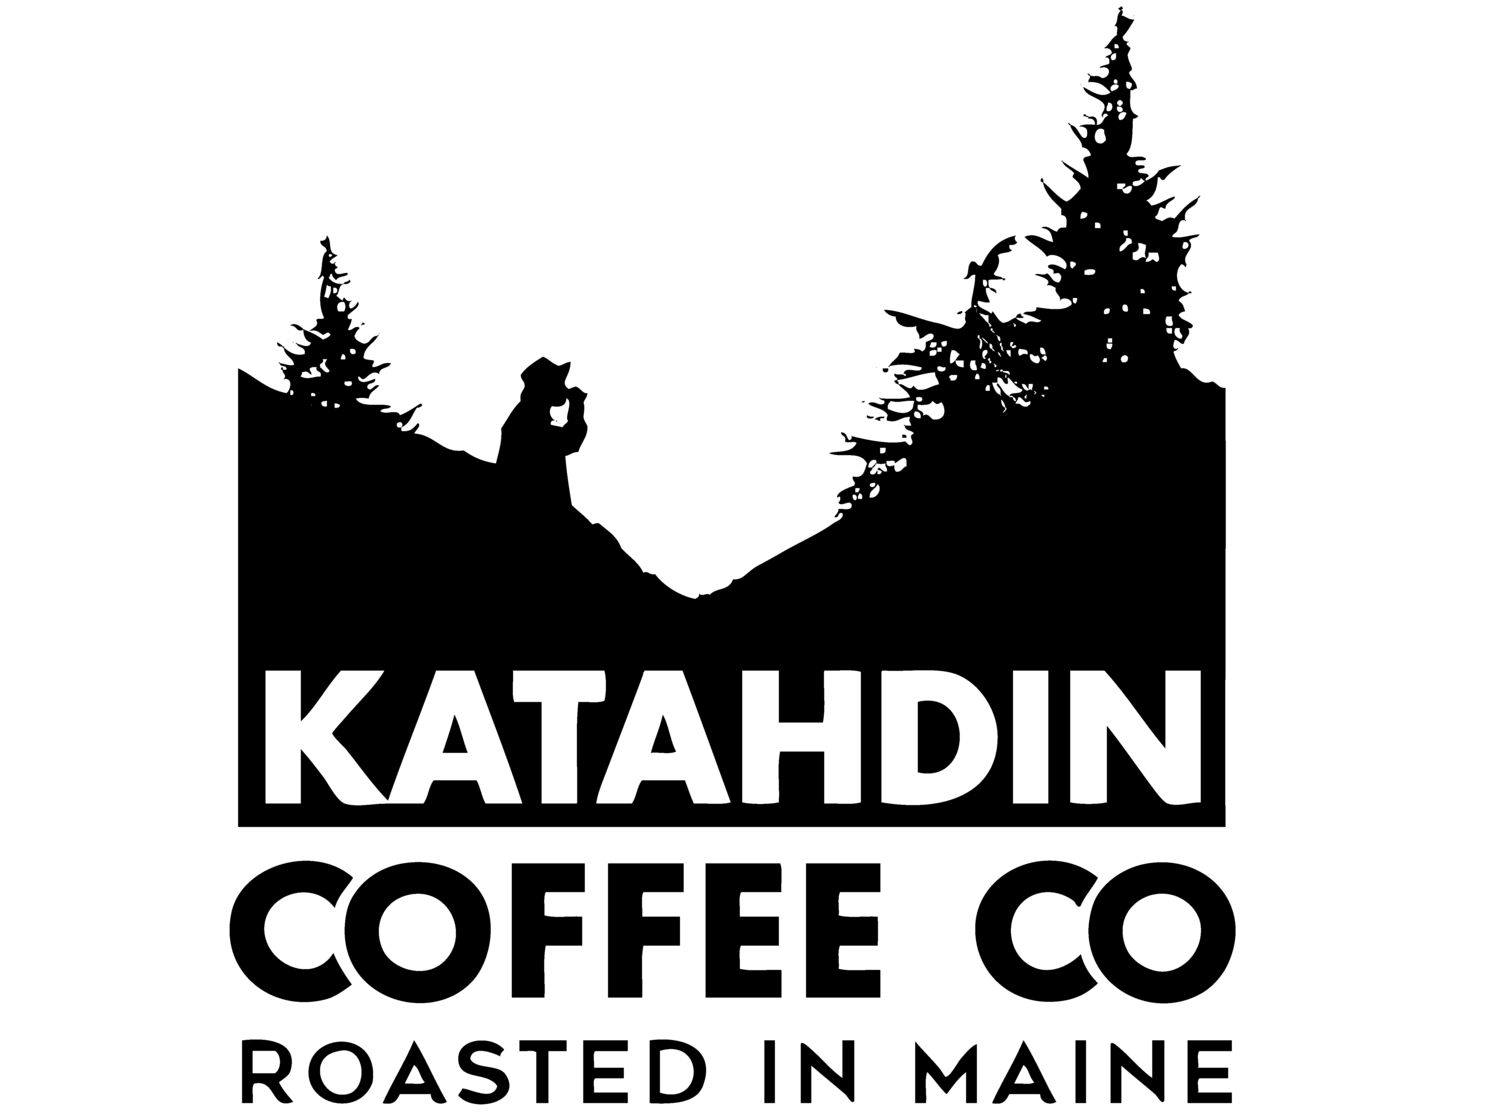 Katahdin Coffee Co.